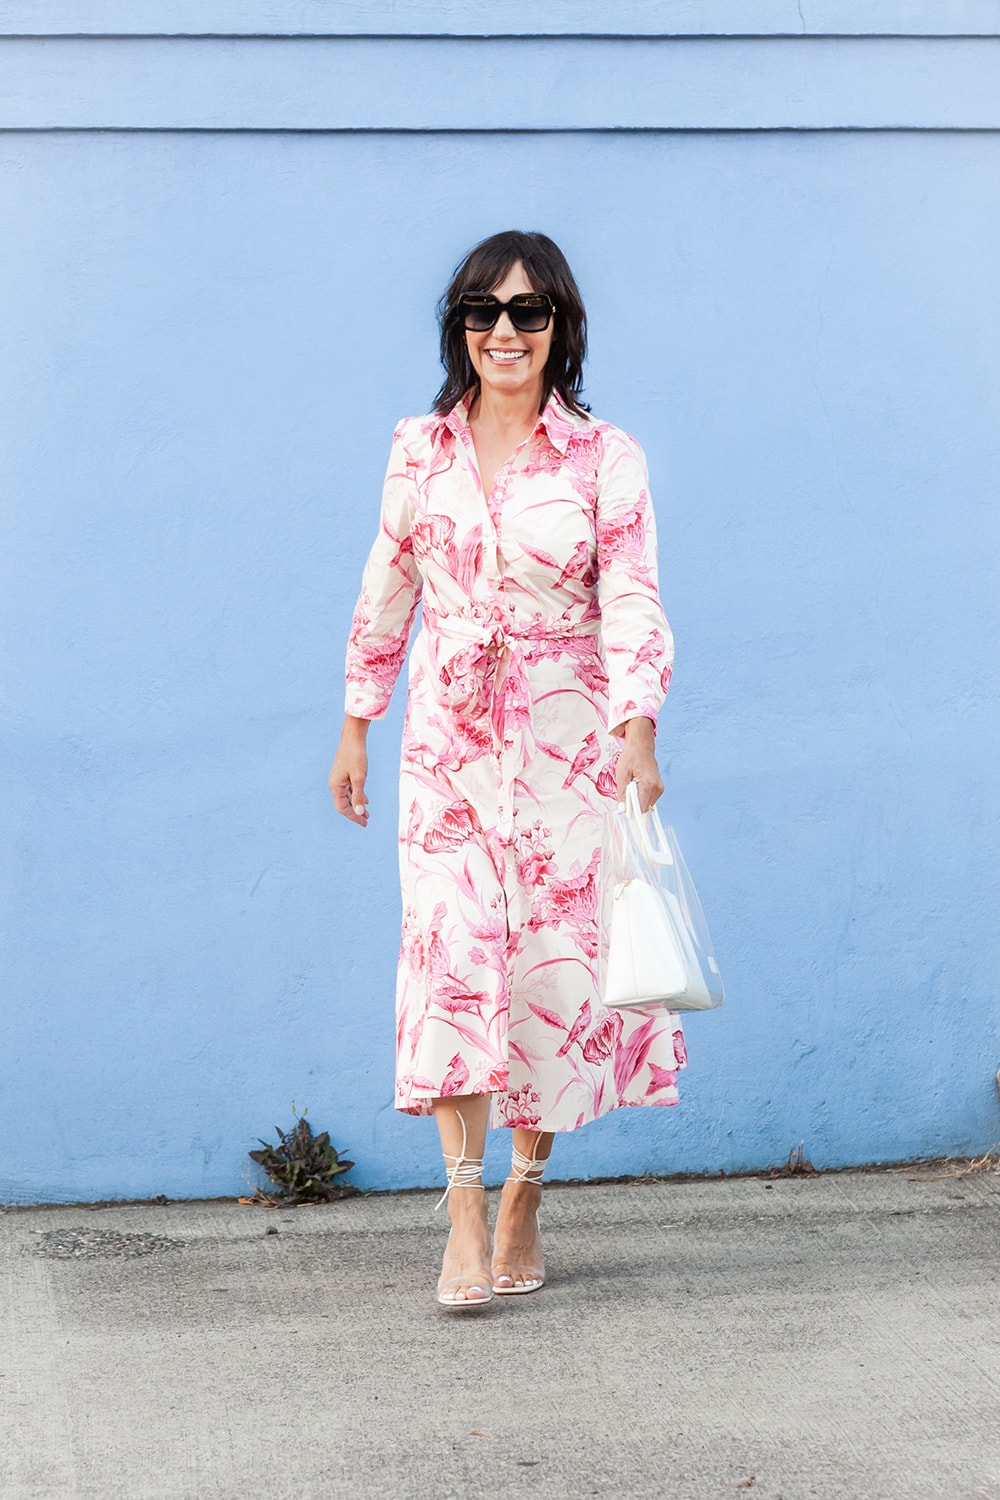 susie wright in pink and white zara shirtdr